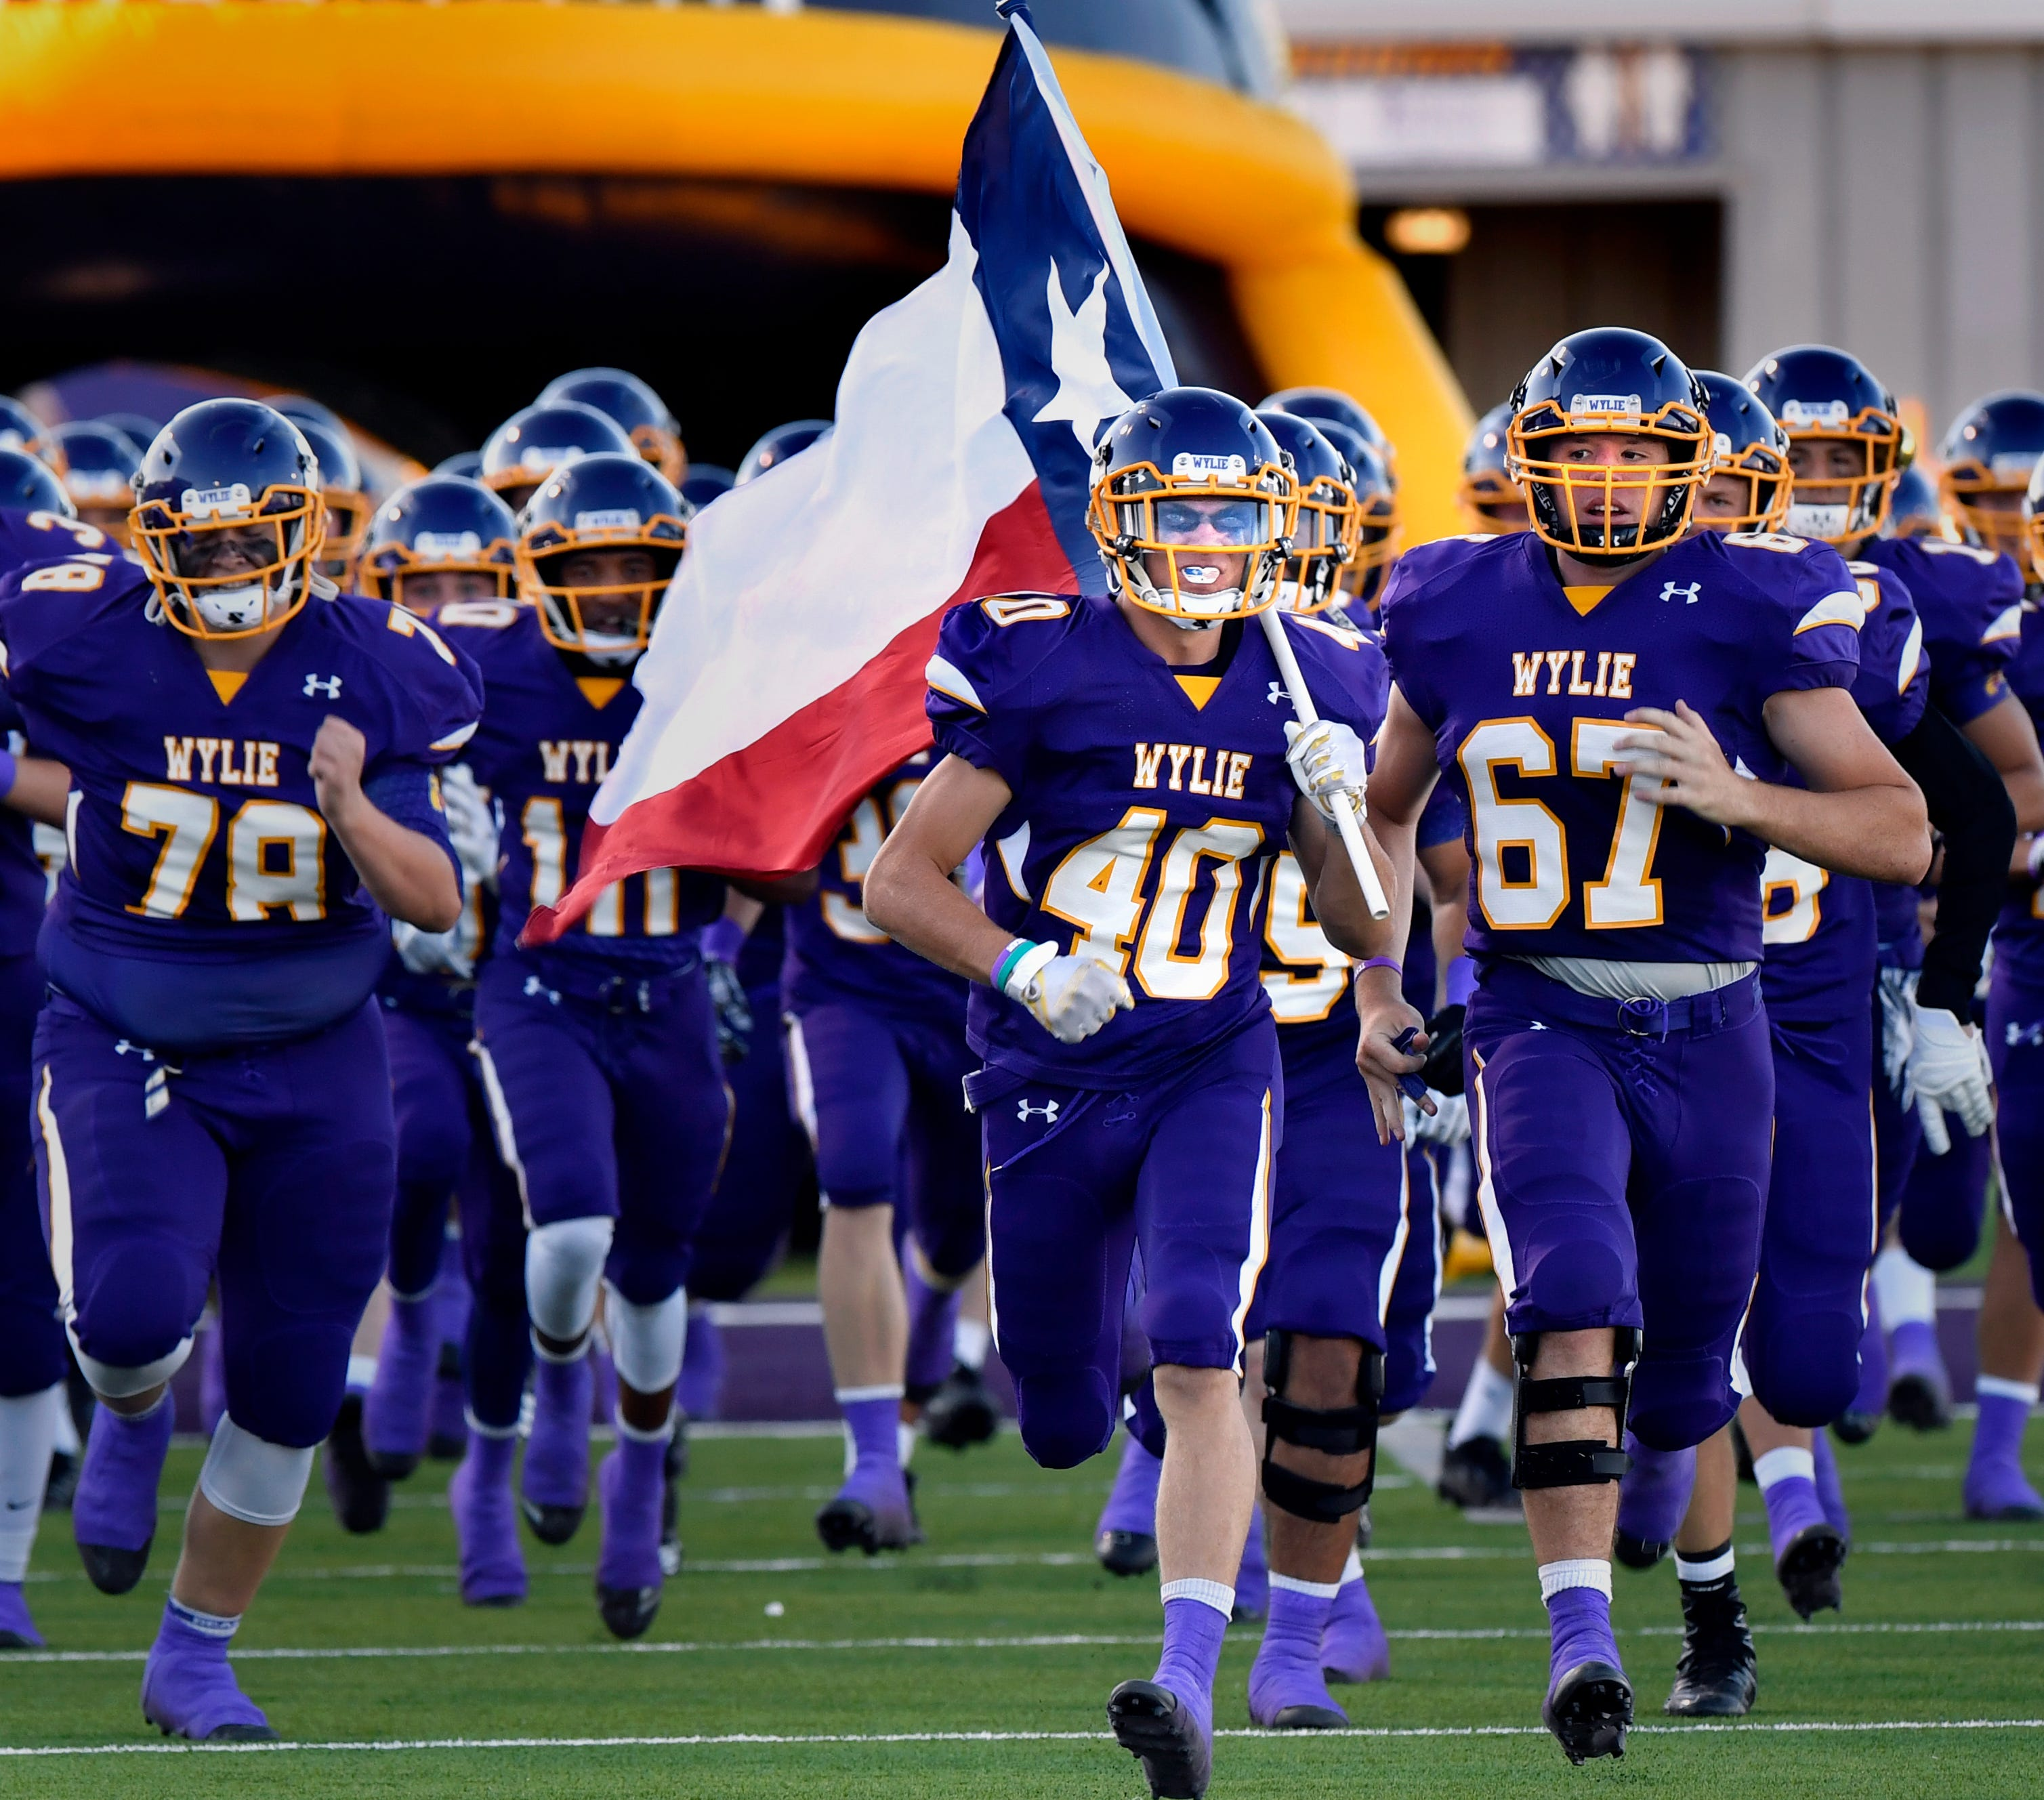 Wylie's Brazos Ham carries the Texas flag as he and the other Bulldogs take the field for their season opener Friday August 31, 2018 against Georgetown. Final score was 31-7, Georgetown.